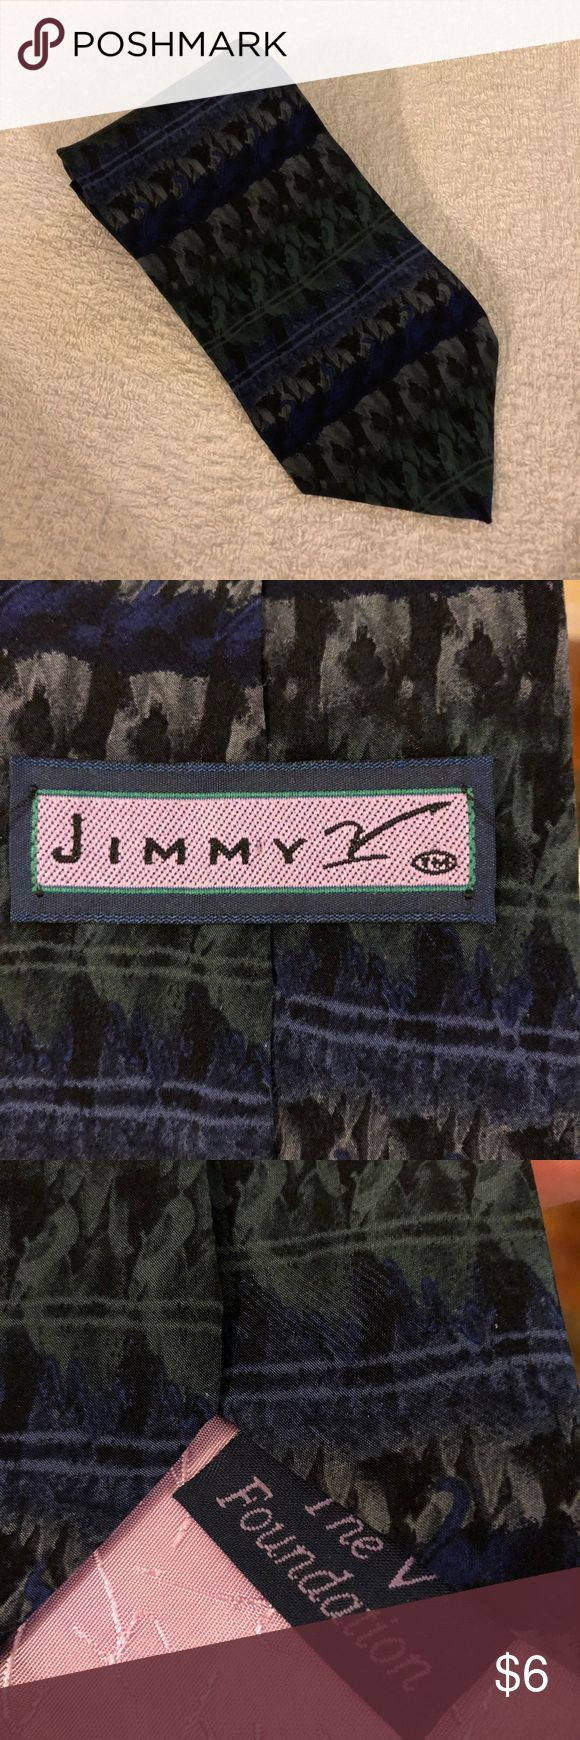 Jimmy V Foundation Navy & Grey Pattern Silk Tie Jimmy V Foundation Navy Blue and Grey Pattern Silk Necktie!! Great condition! Please make reasonable offers and bundle! Ask questions! Accessories Ties